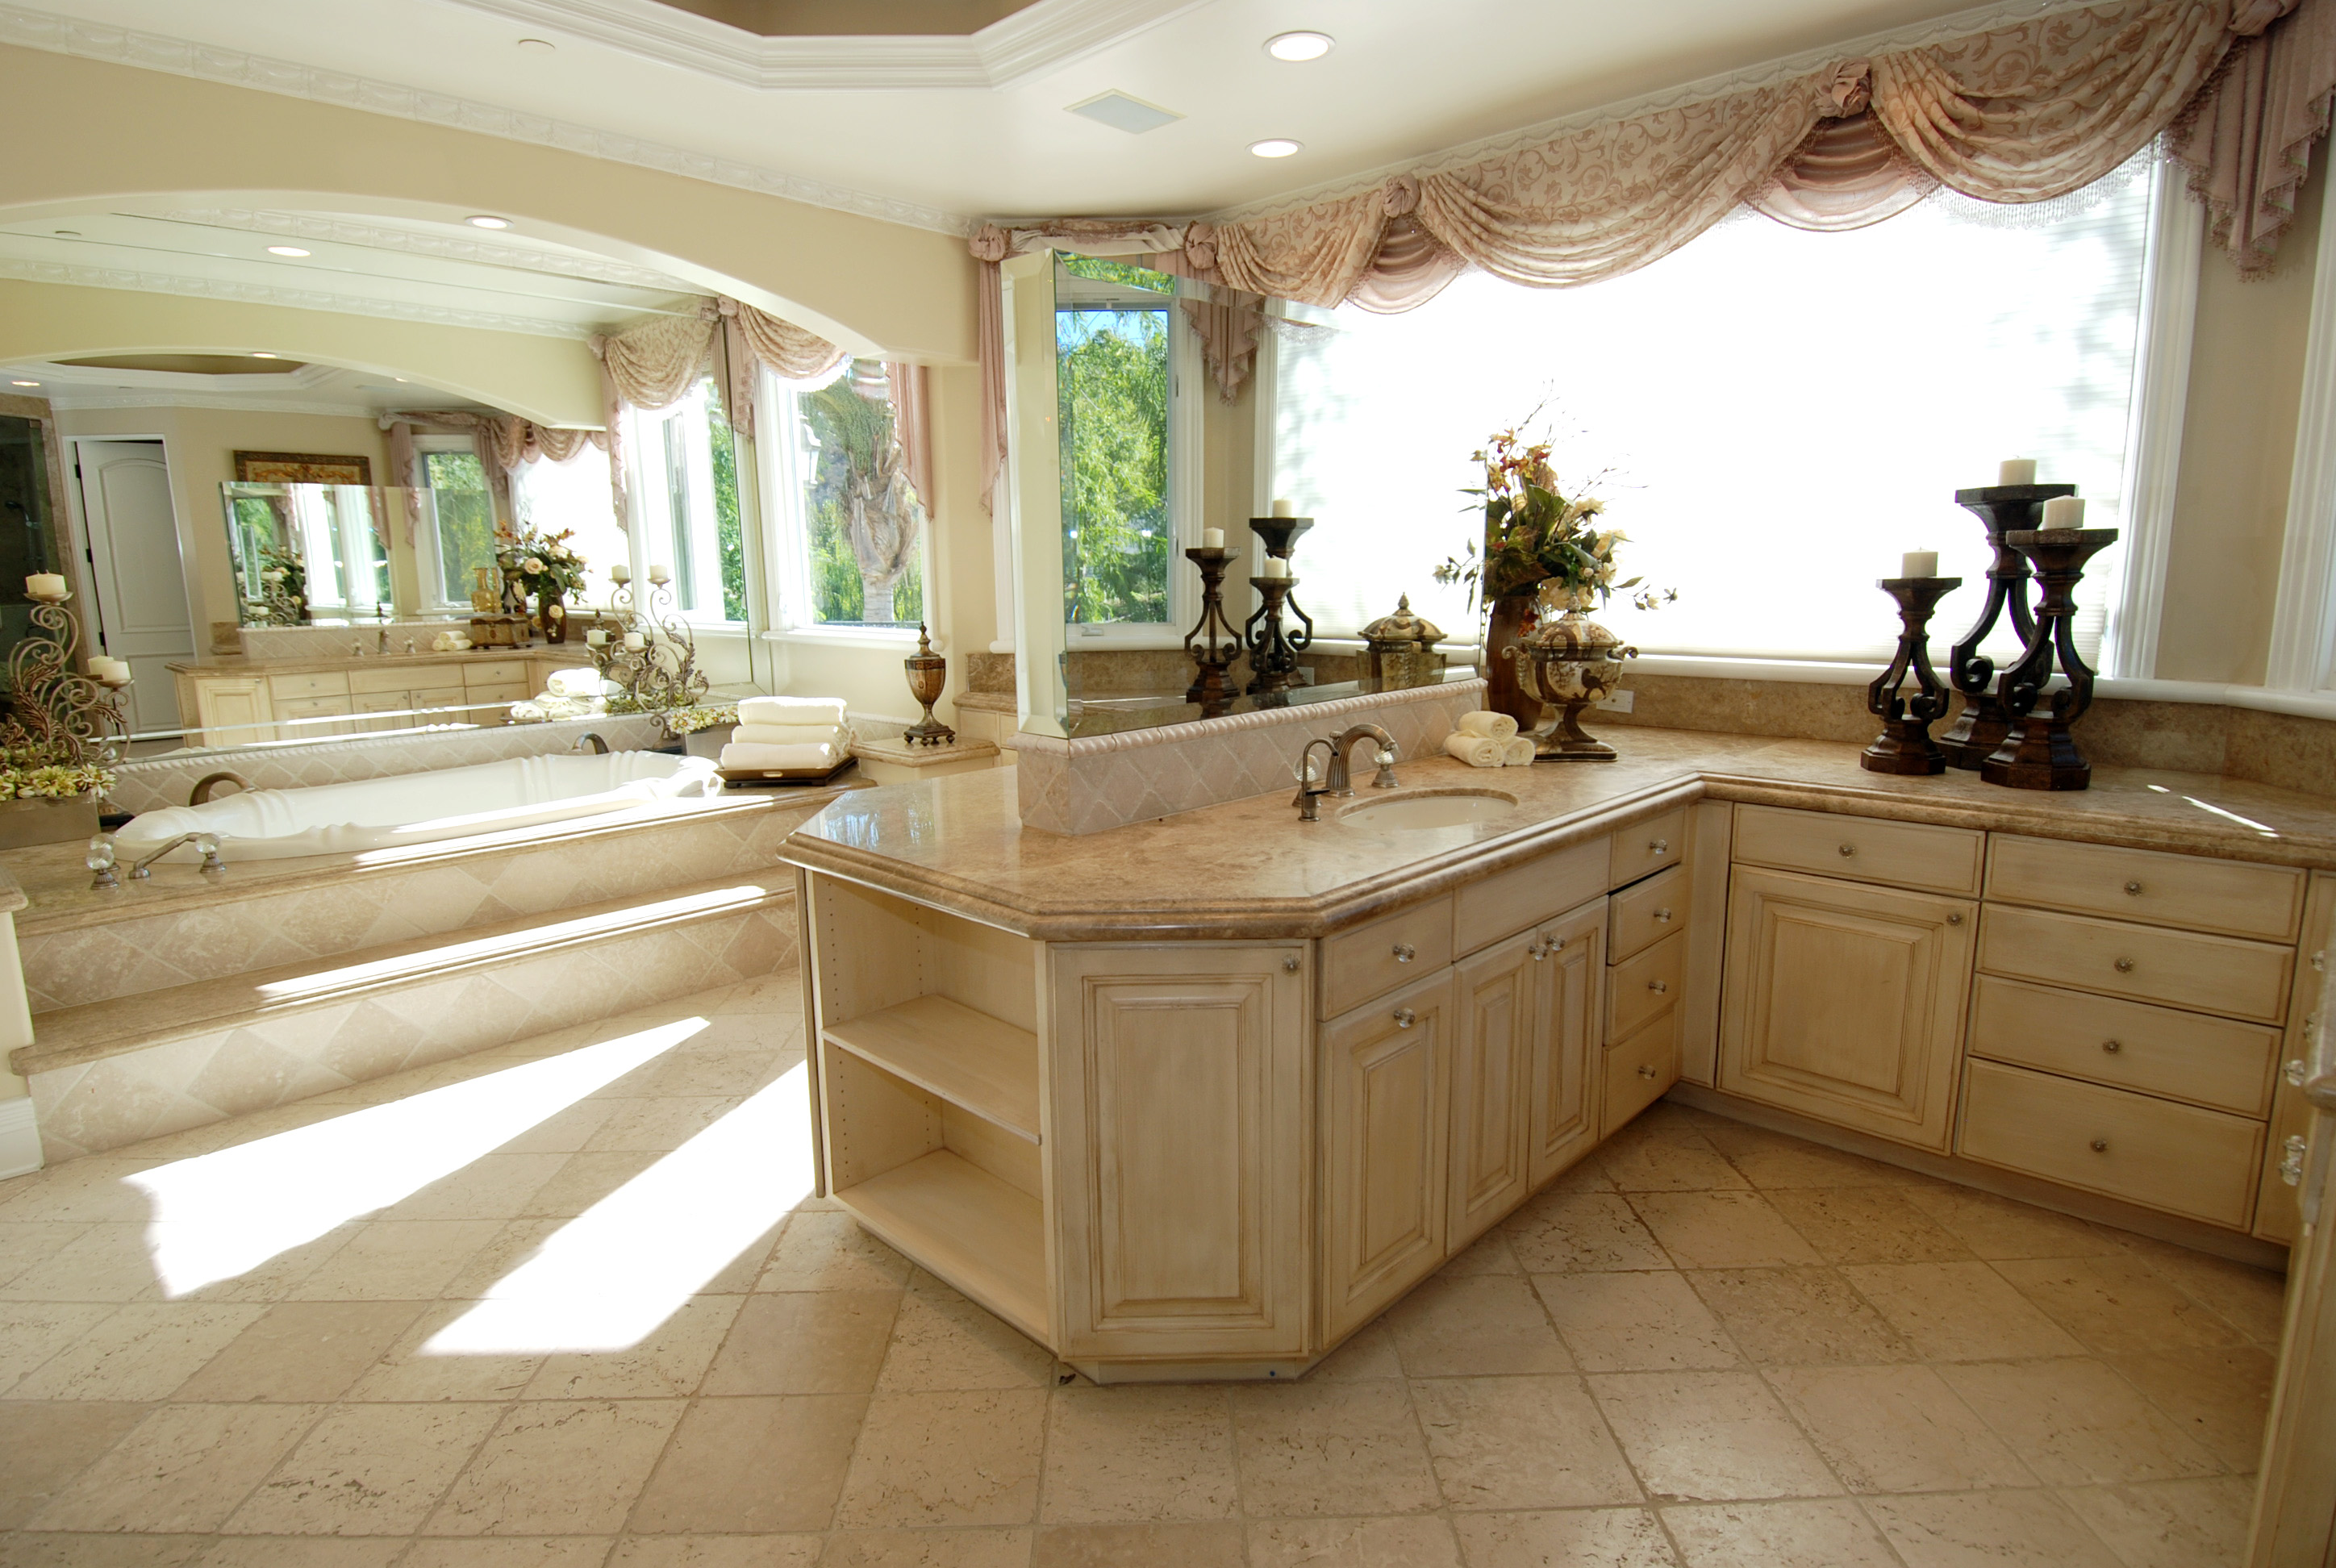 Mediterranean Manor Luxury Home Finish Carpentry Project